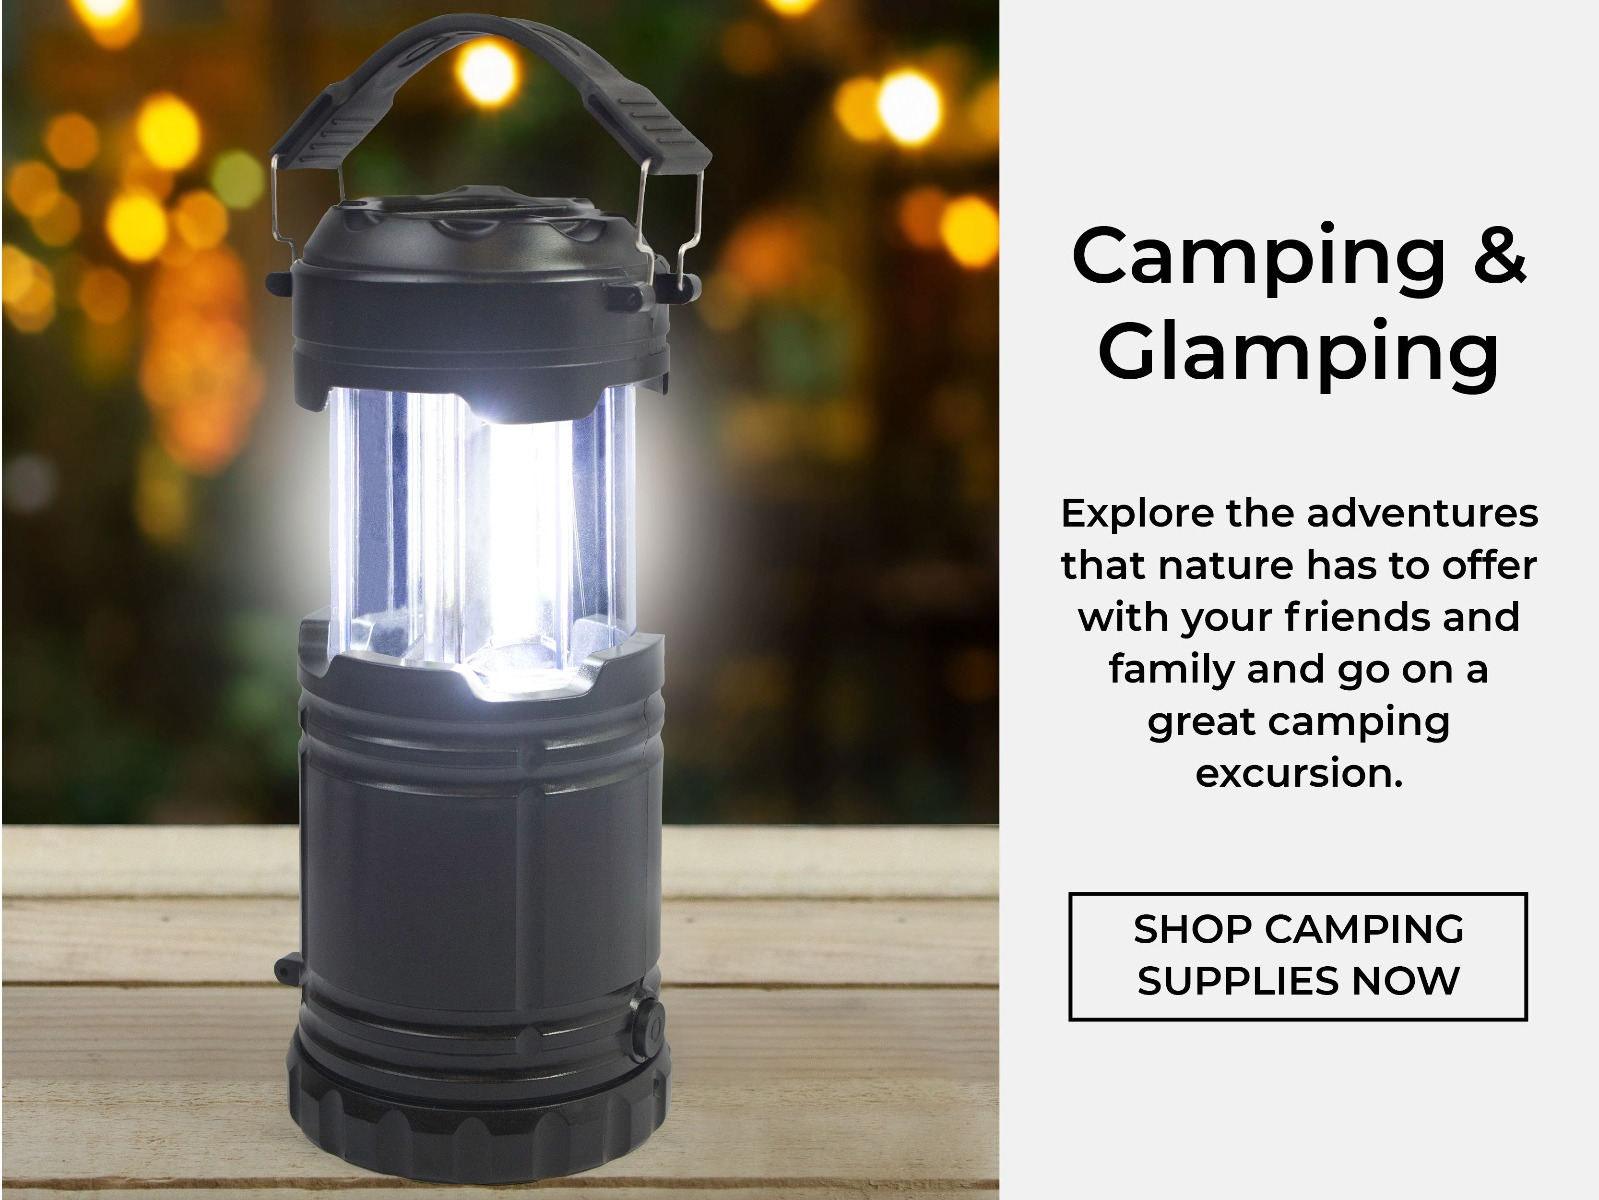 Shop Camping Supplies Now